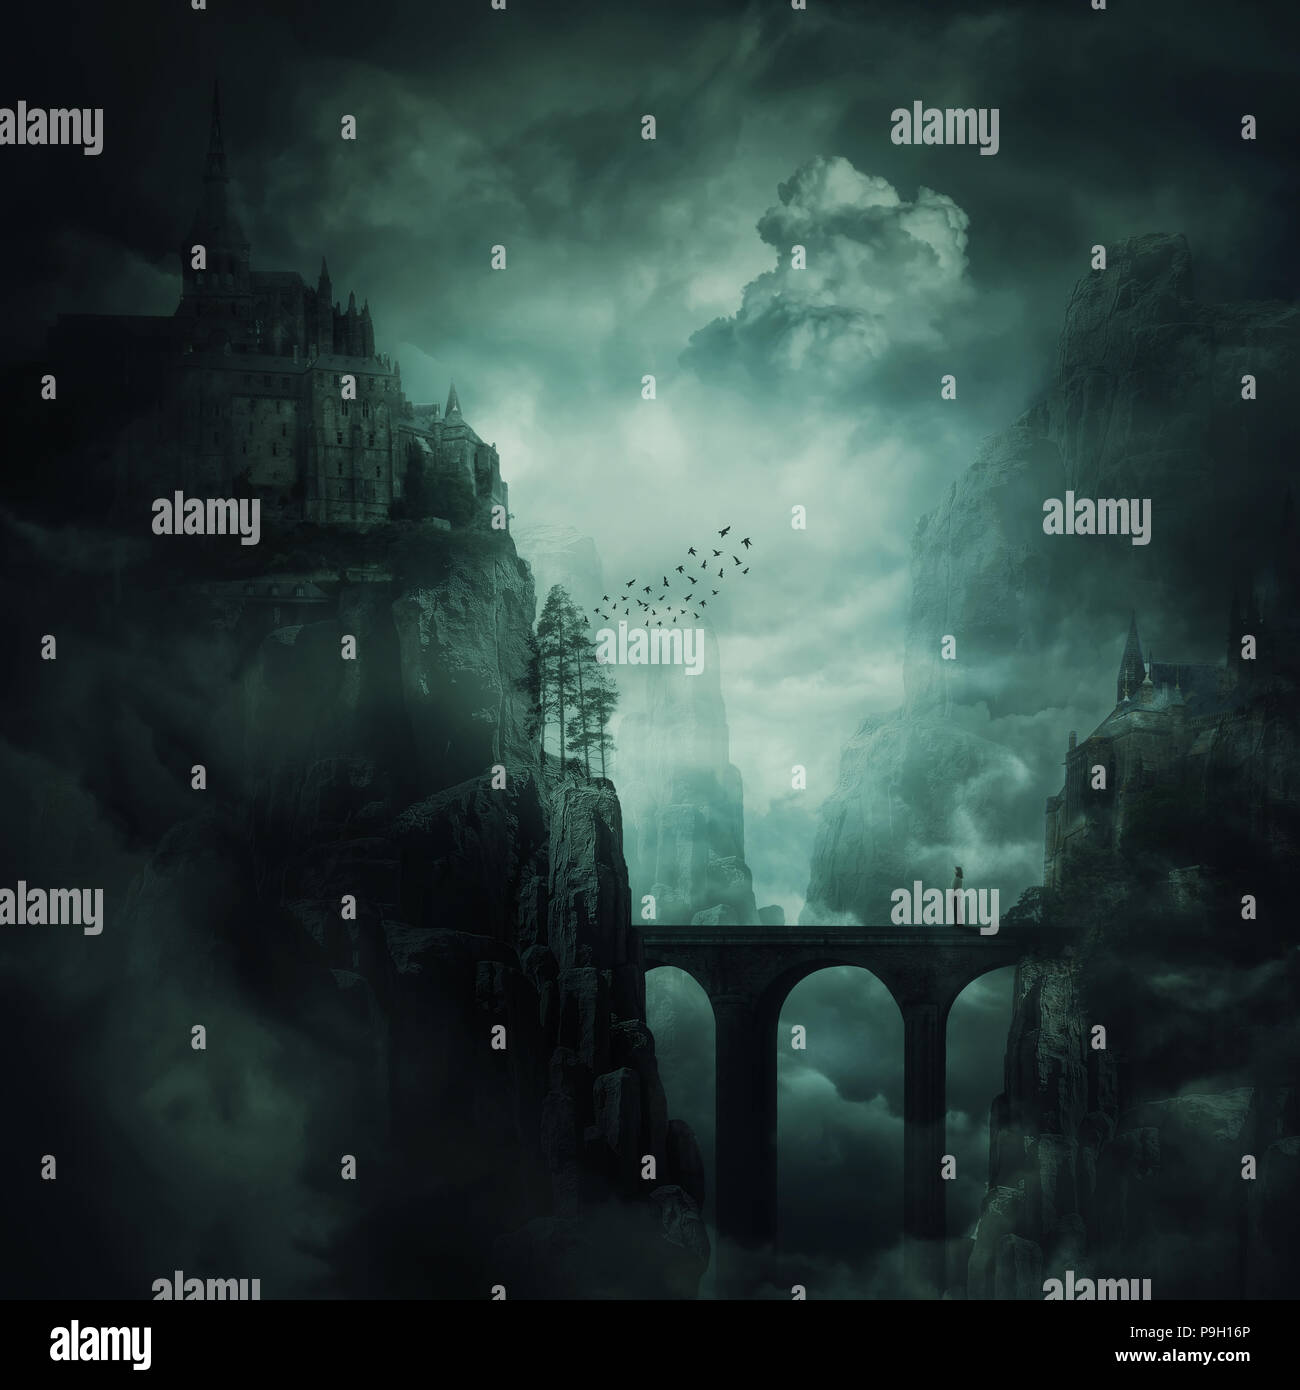 Surreal view as a lonely girl stand on a stone bridge surrounded by dark mountain cliff with castle and old buildings on the top. The forgotten kingdo - Stock Image